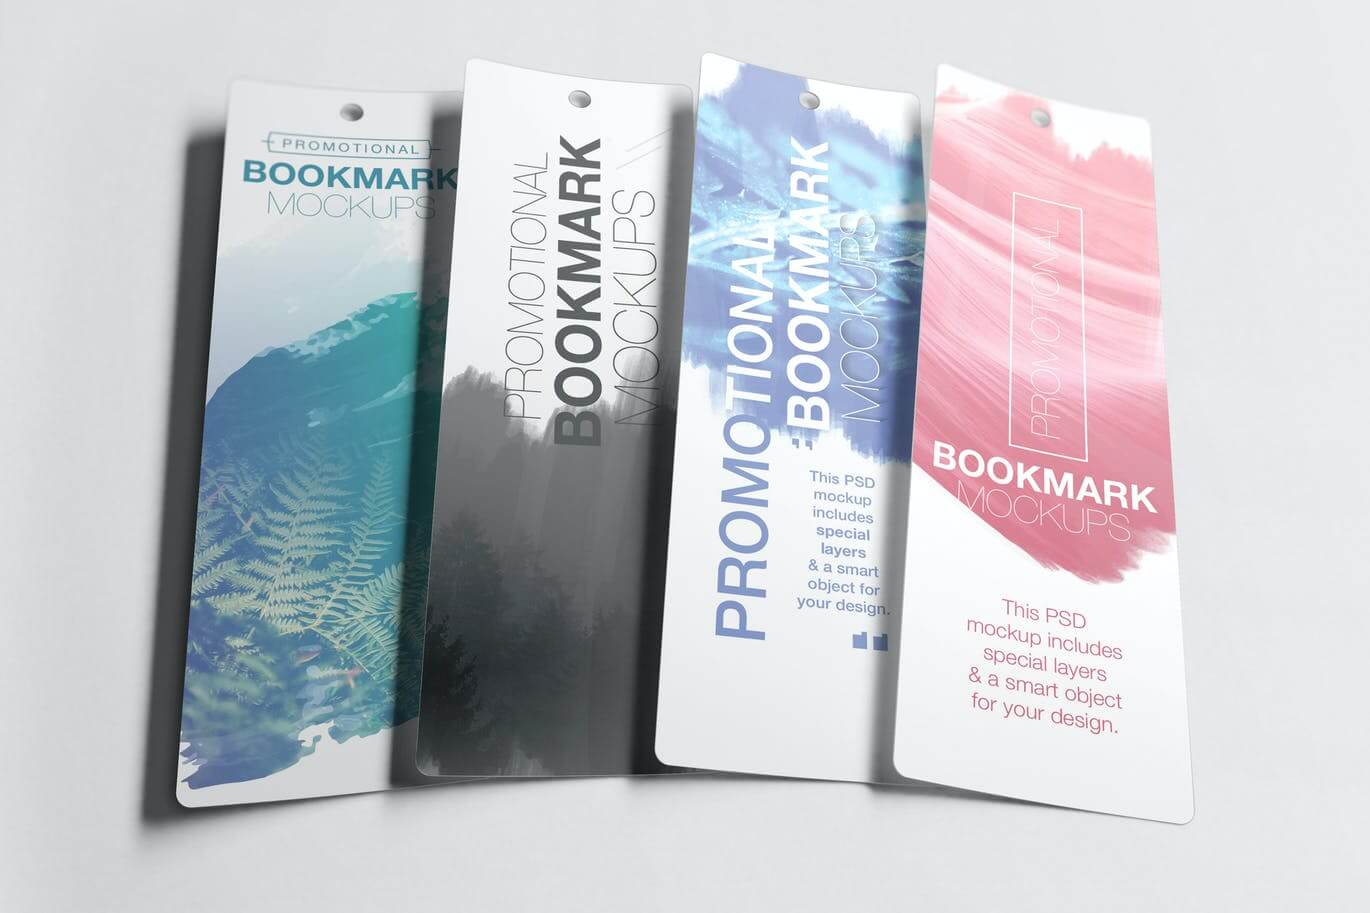 Promotional Bookmark Mockup (1)